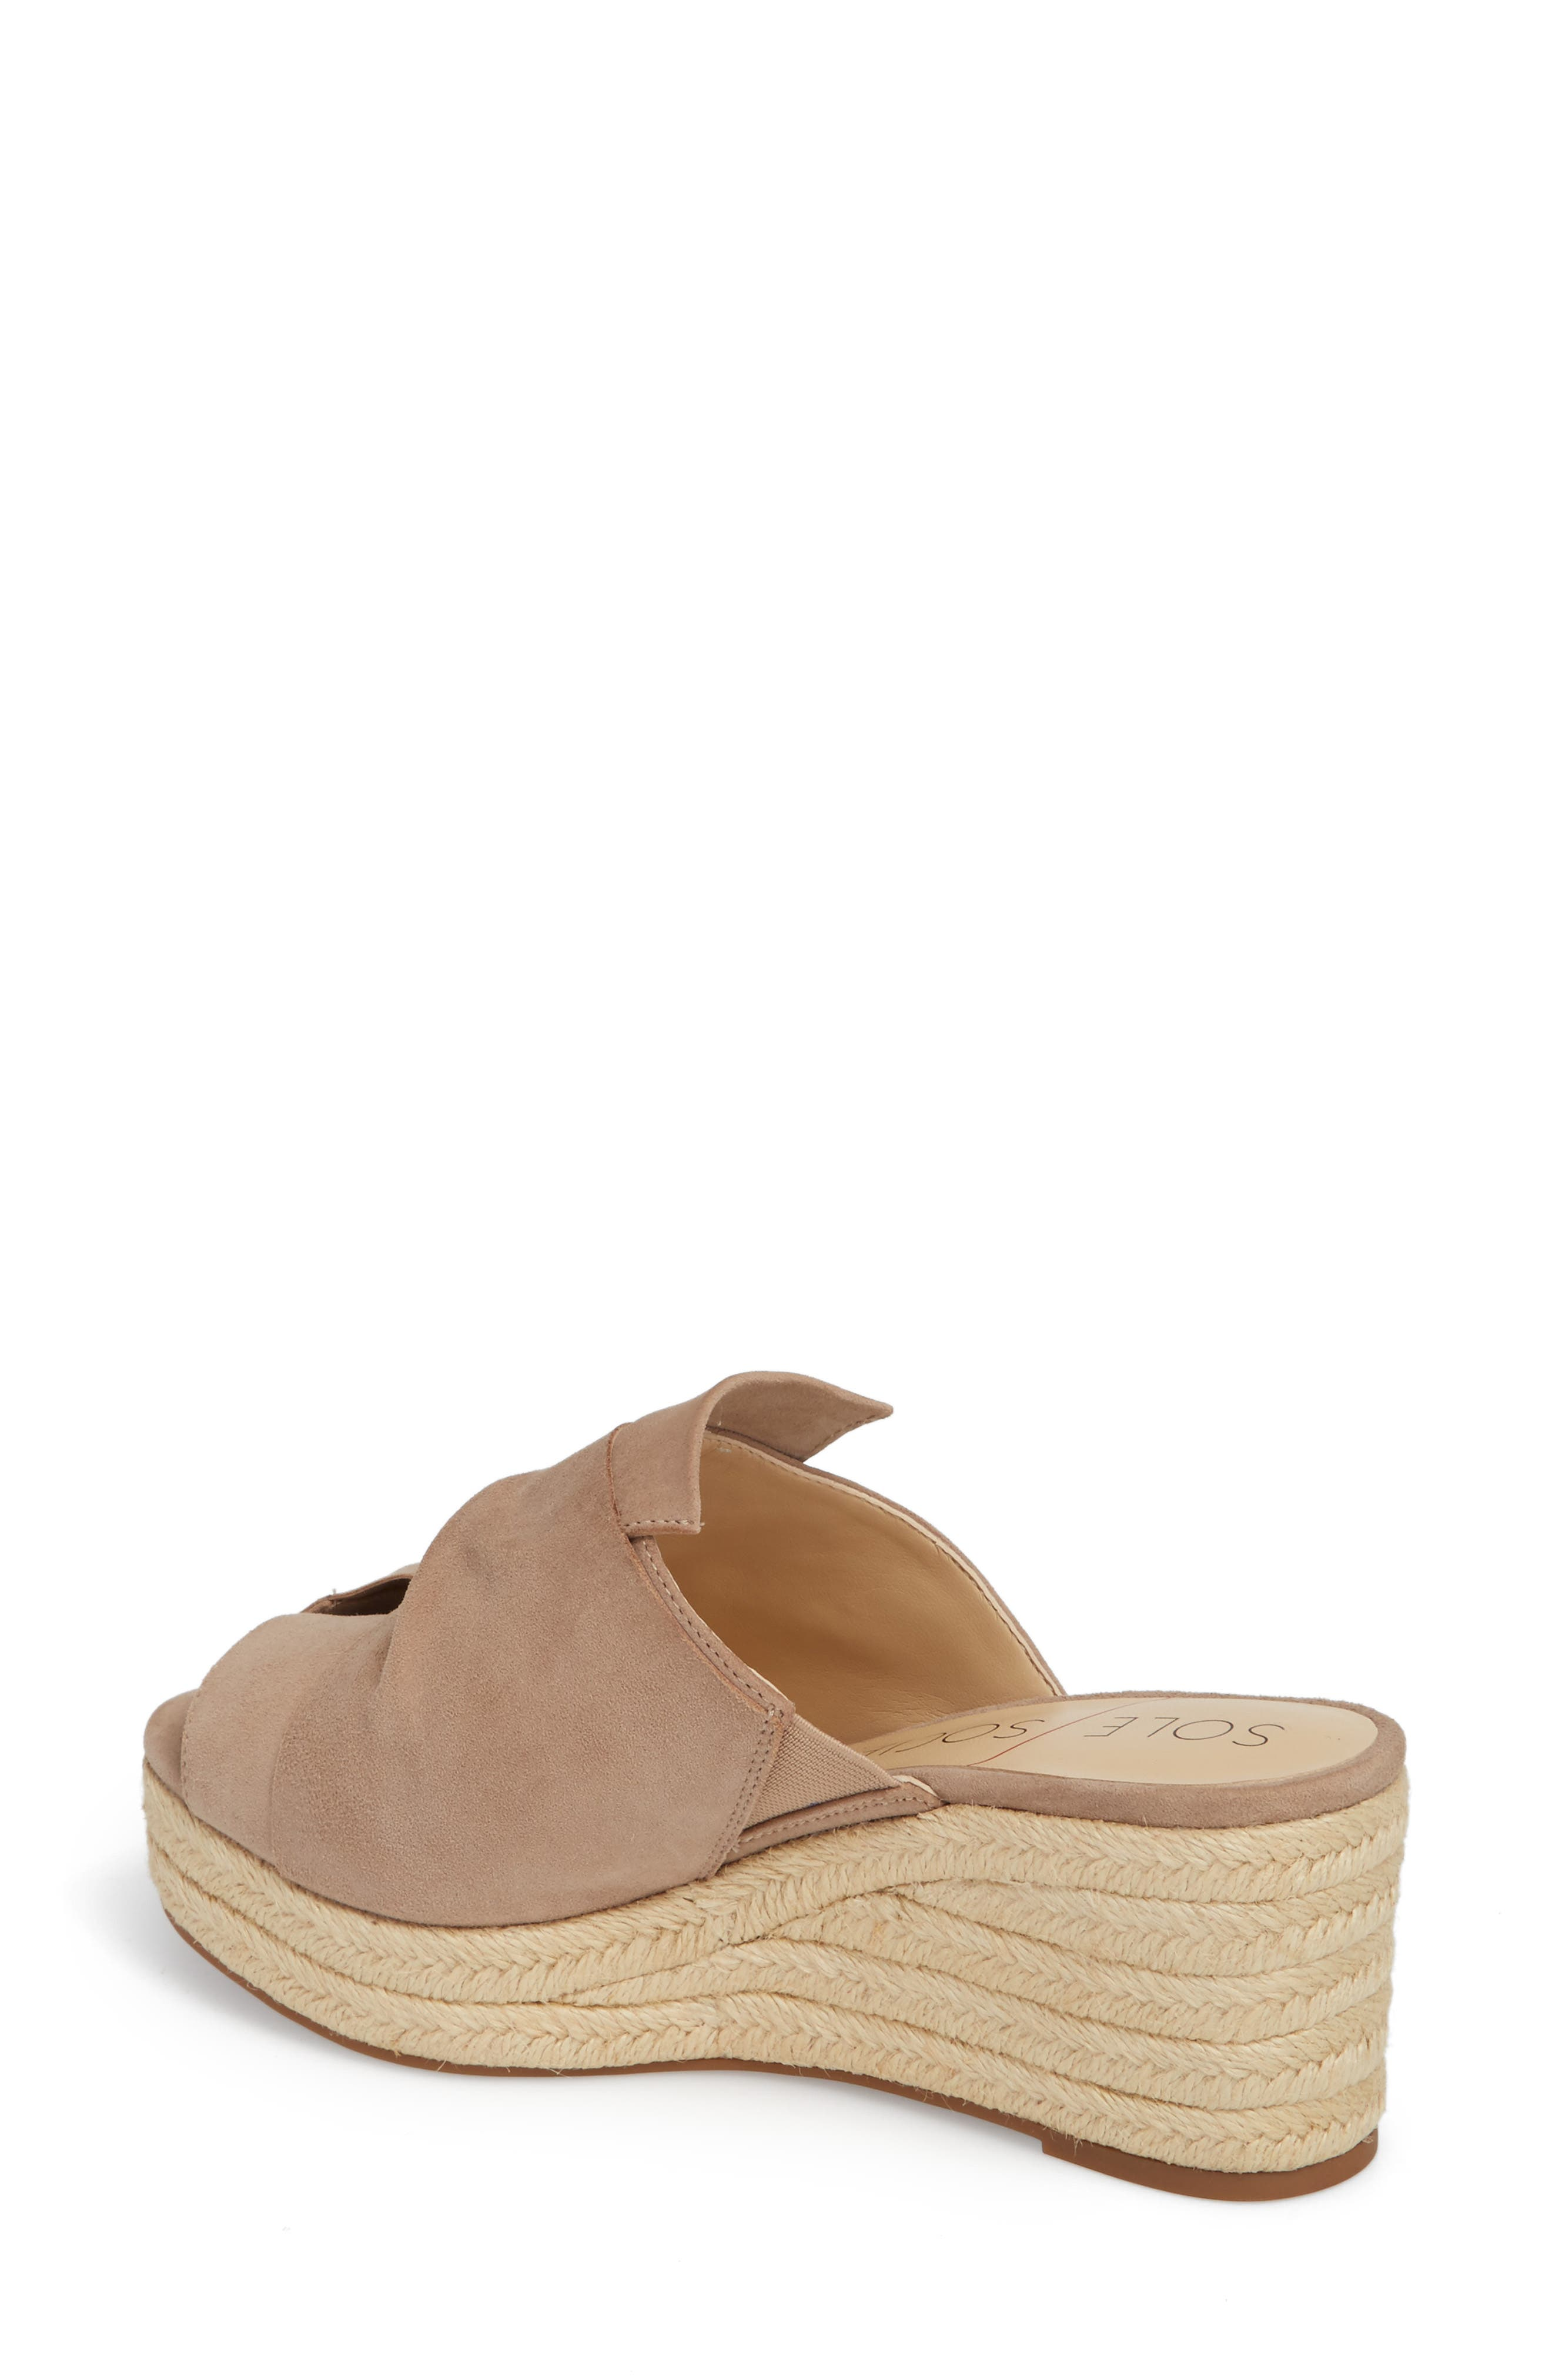 SOLE SOCIETY, Carima Espadrille Wedge, Alternate thumbnail 2, color, TAUPE FABRIC